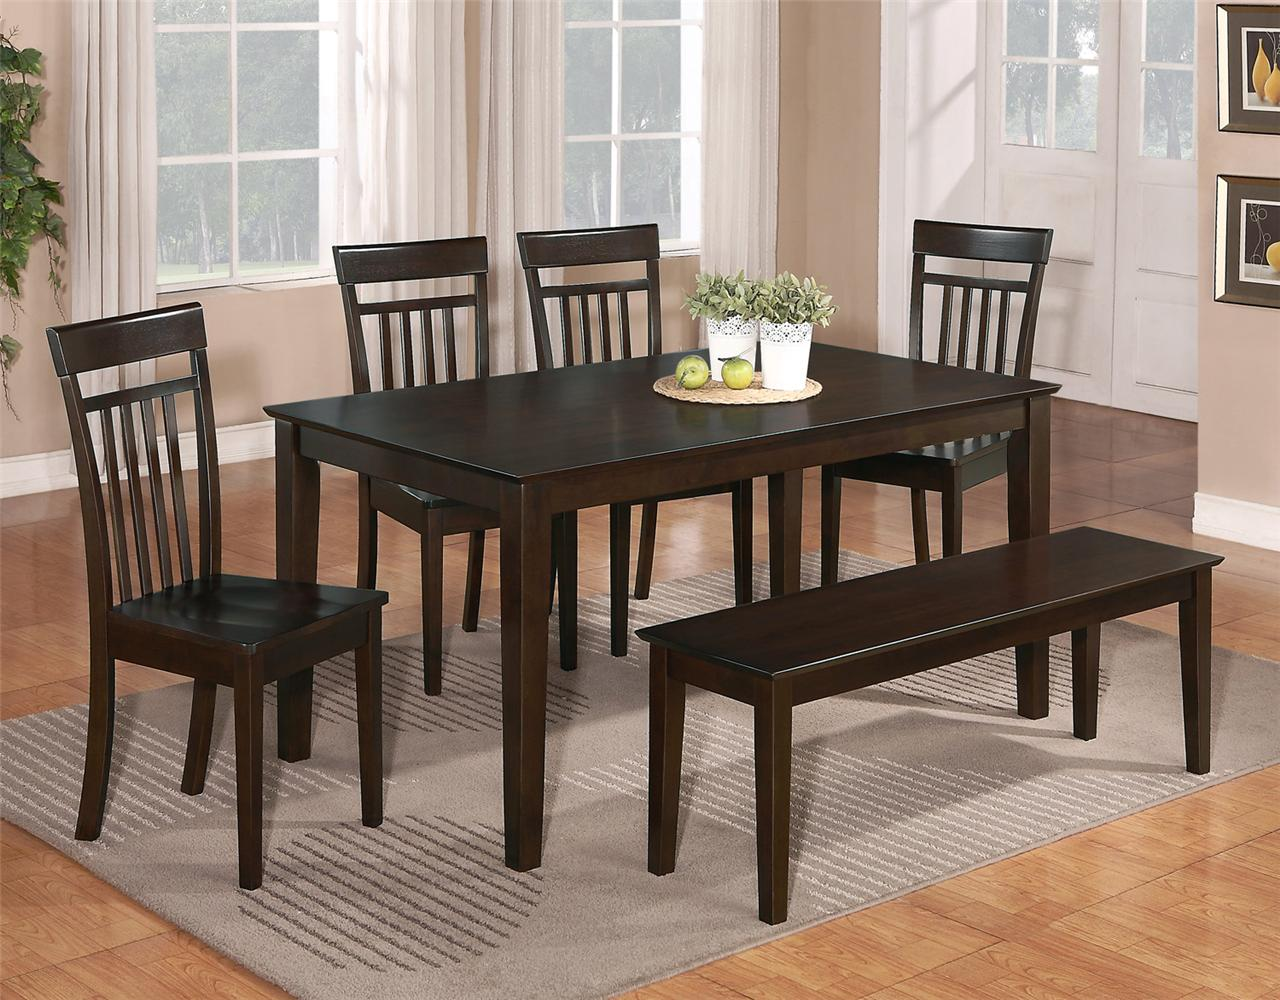 6 pc dinette kitchen dining room set table w 4 wood chair Kitchen table with bench and chairs